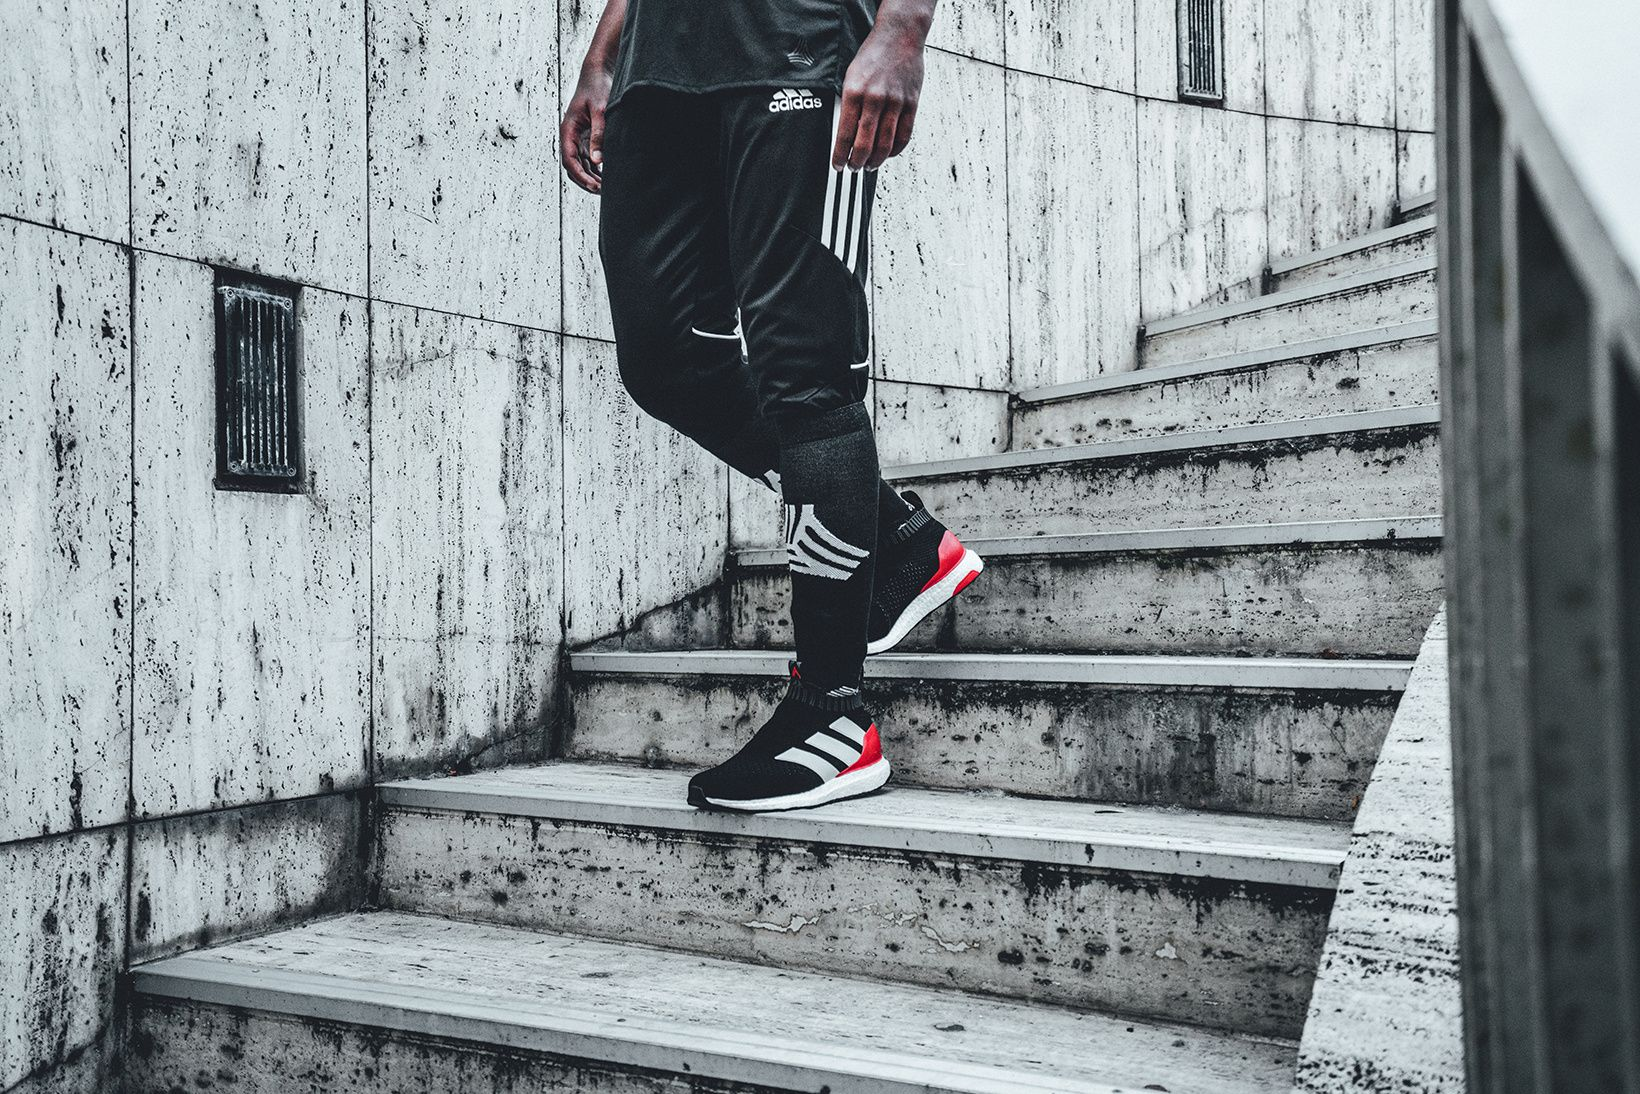 Adidas Introduces A Red Limit Edition Of The Ace 16 Purecontrol Ultraboost Ultra Boost Adidas Ultra Boost Dressed To Kill